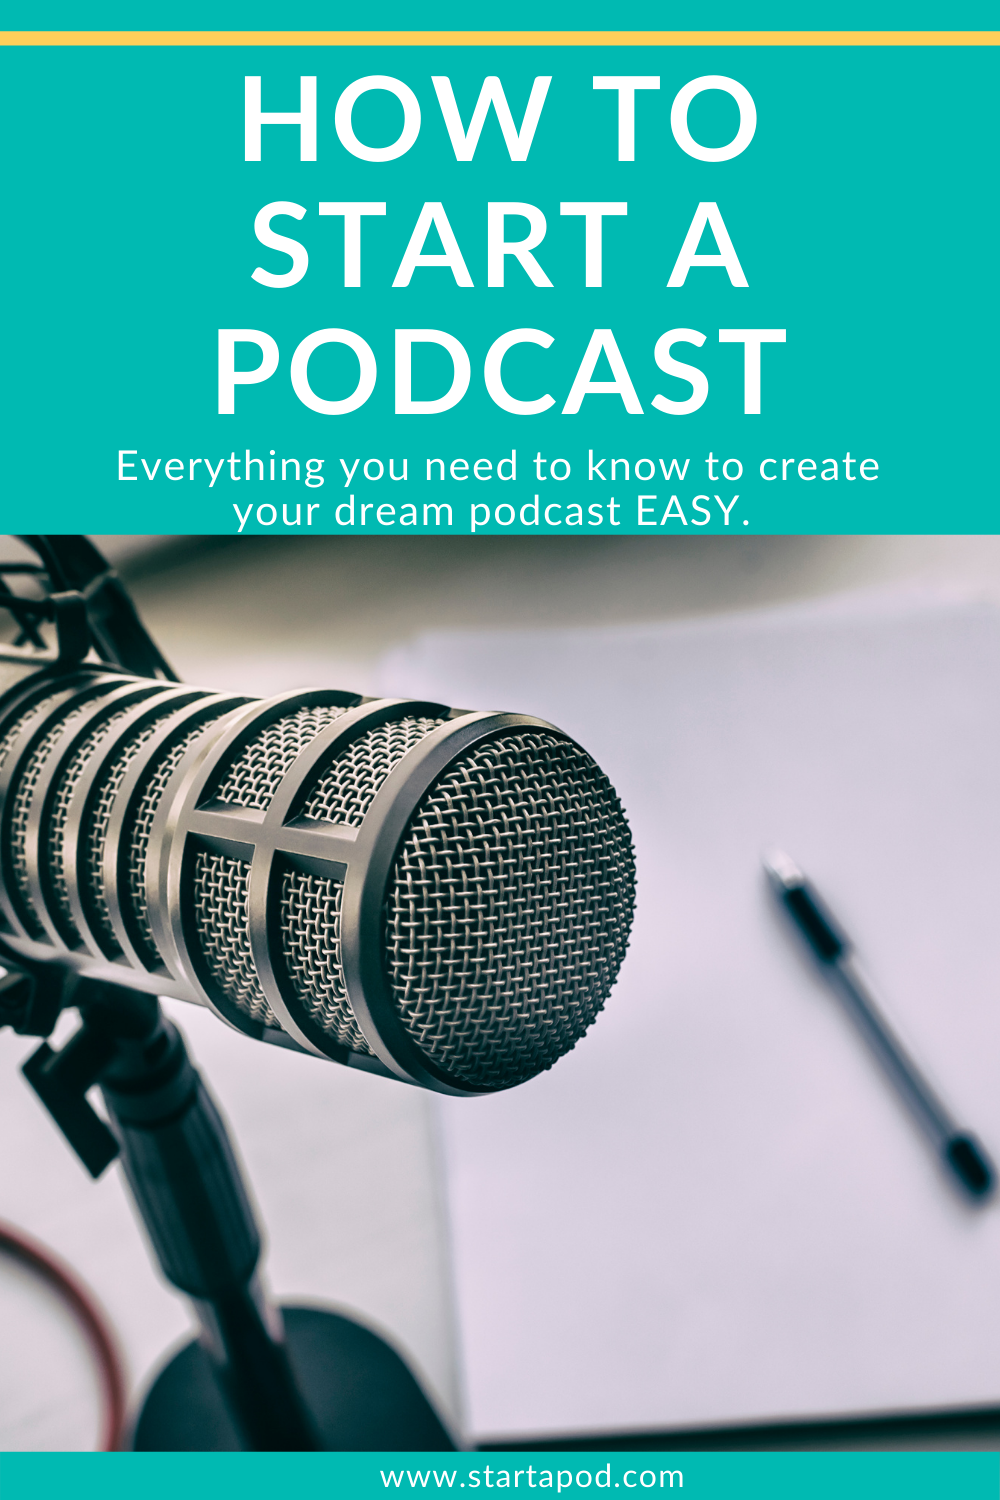 How To Start A Podcast In 2020 Updated In 2020